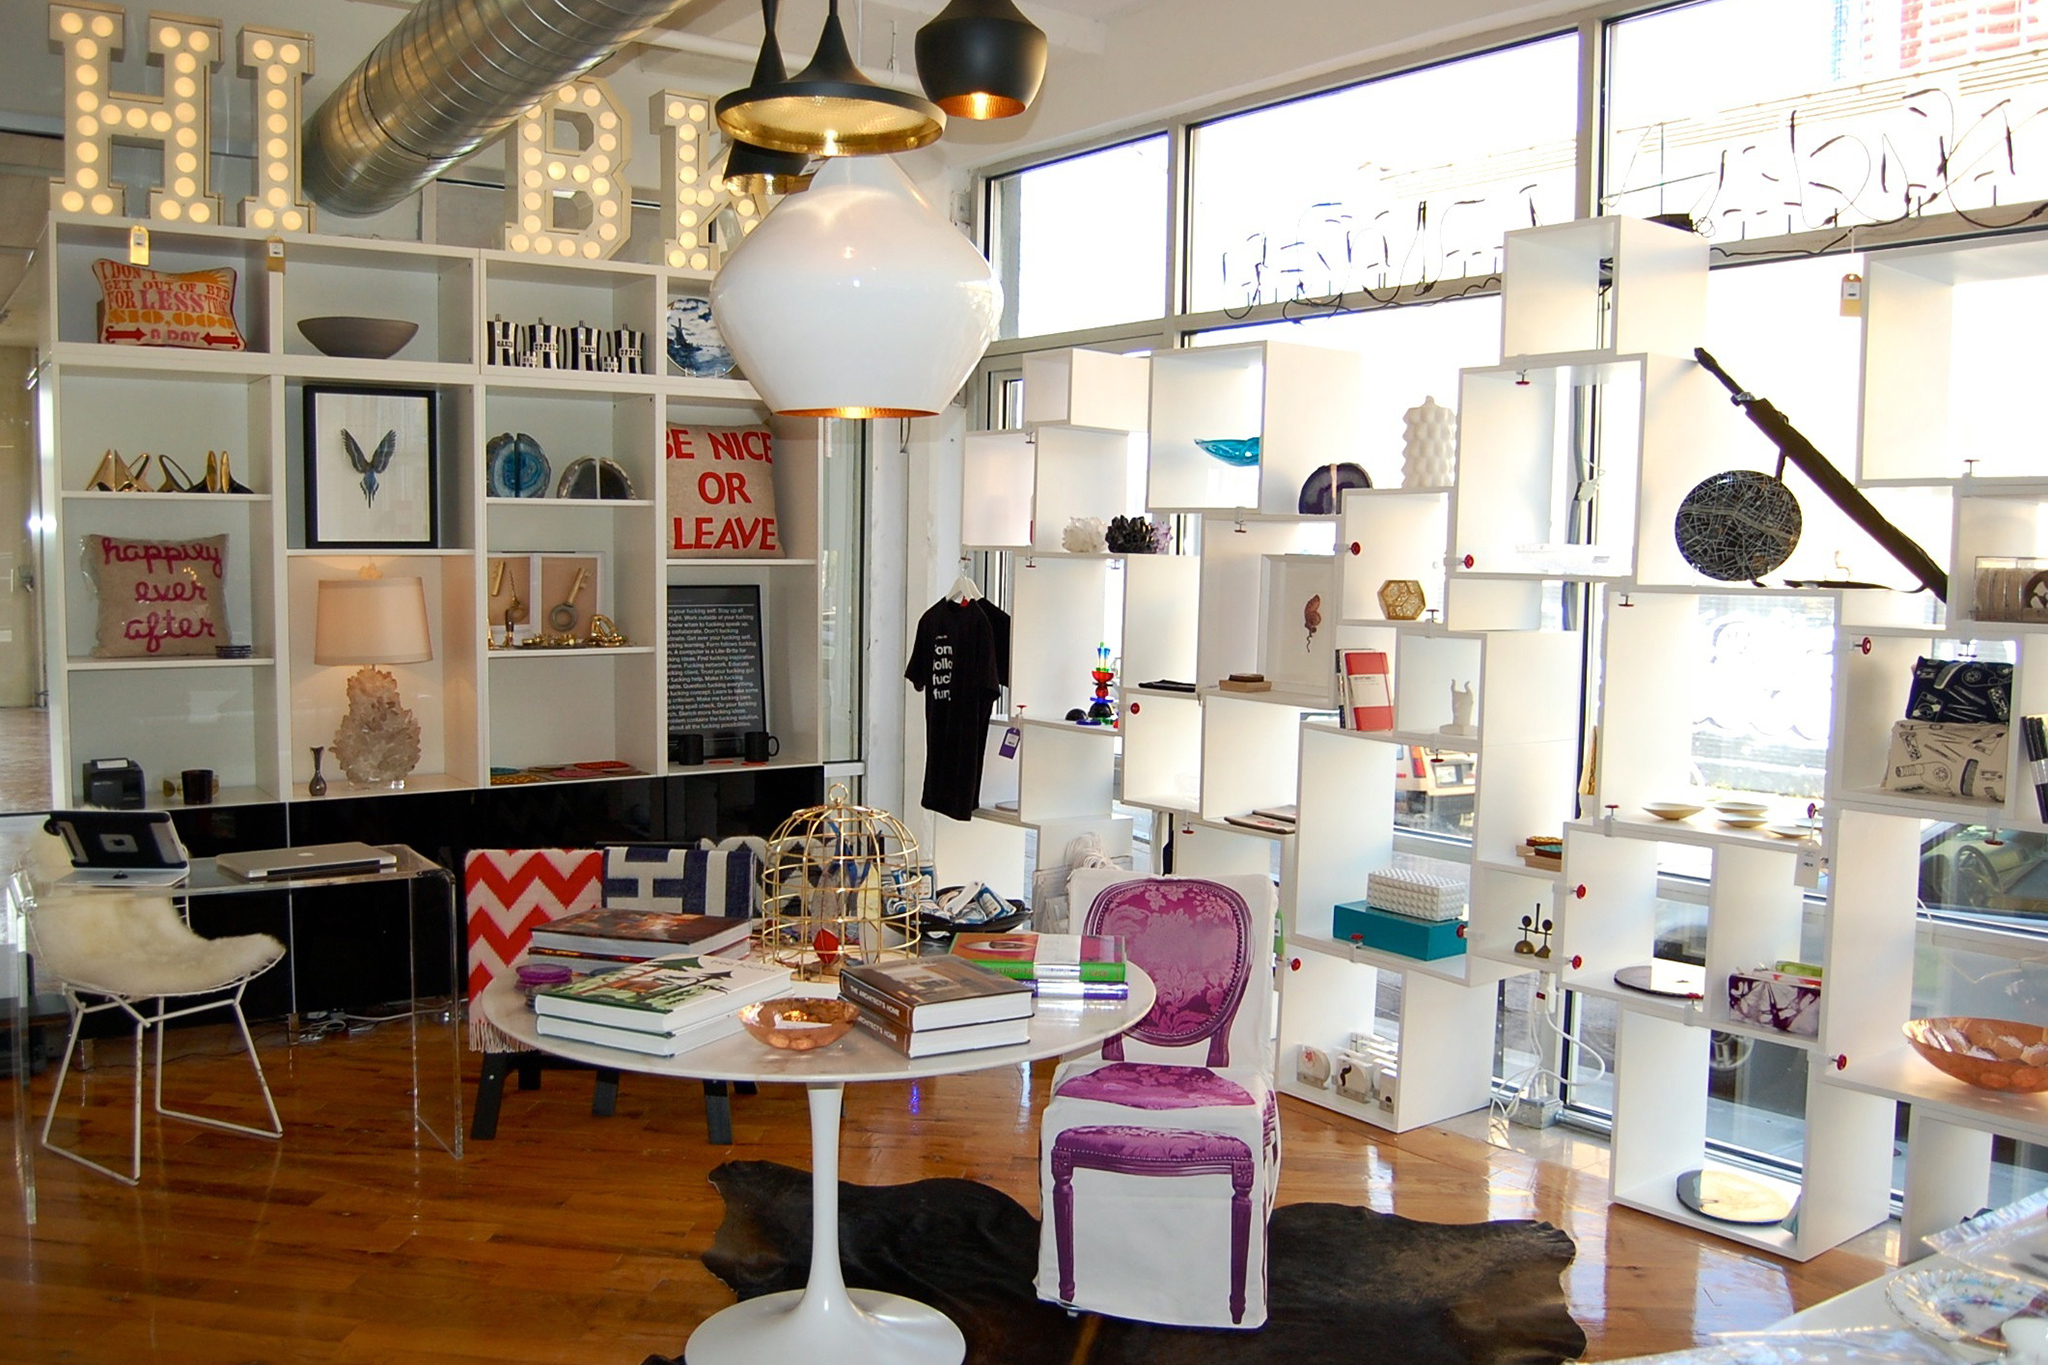 Home Decor Stores In NYC For Decorating Ideas And Furnishings